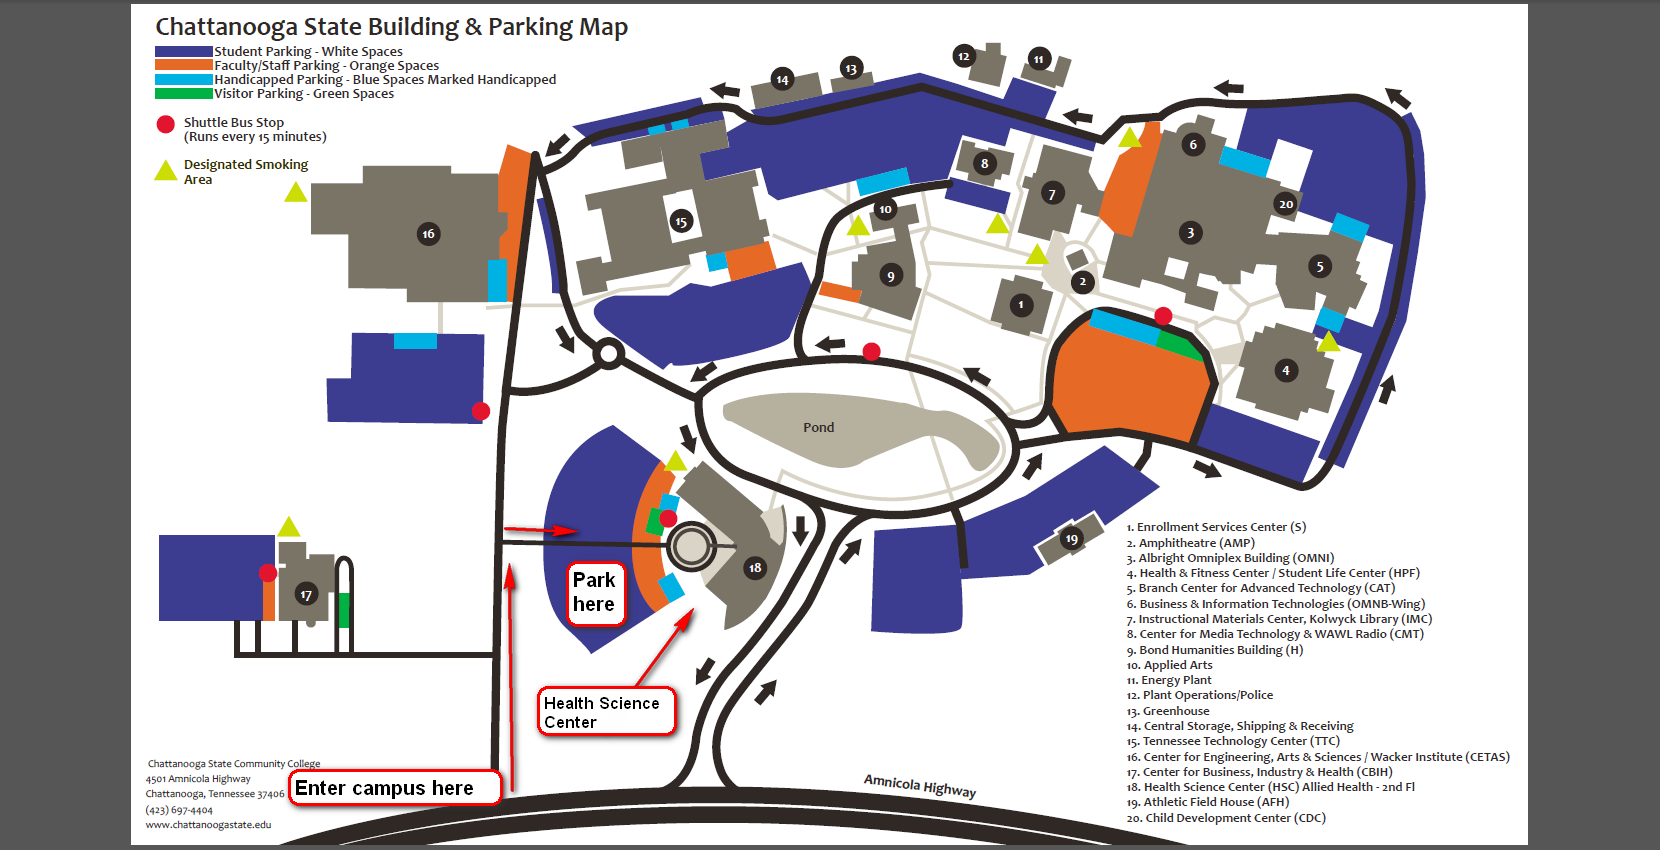 Chattanooga campus map